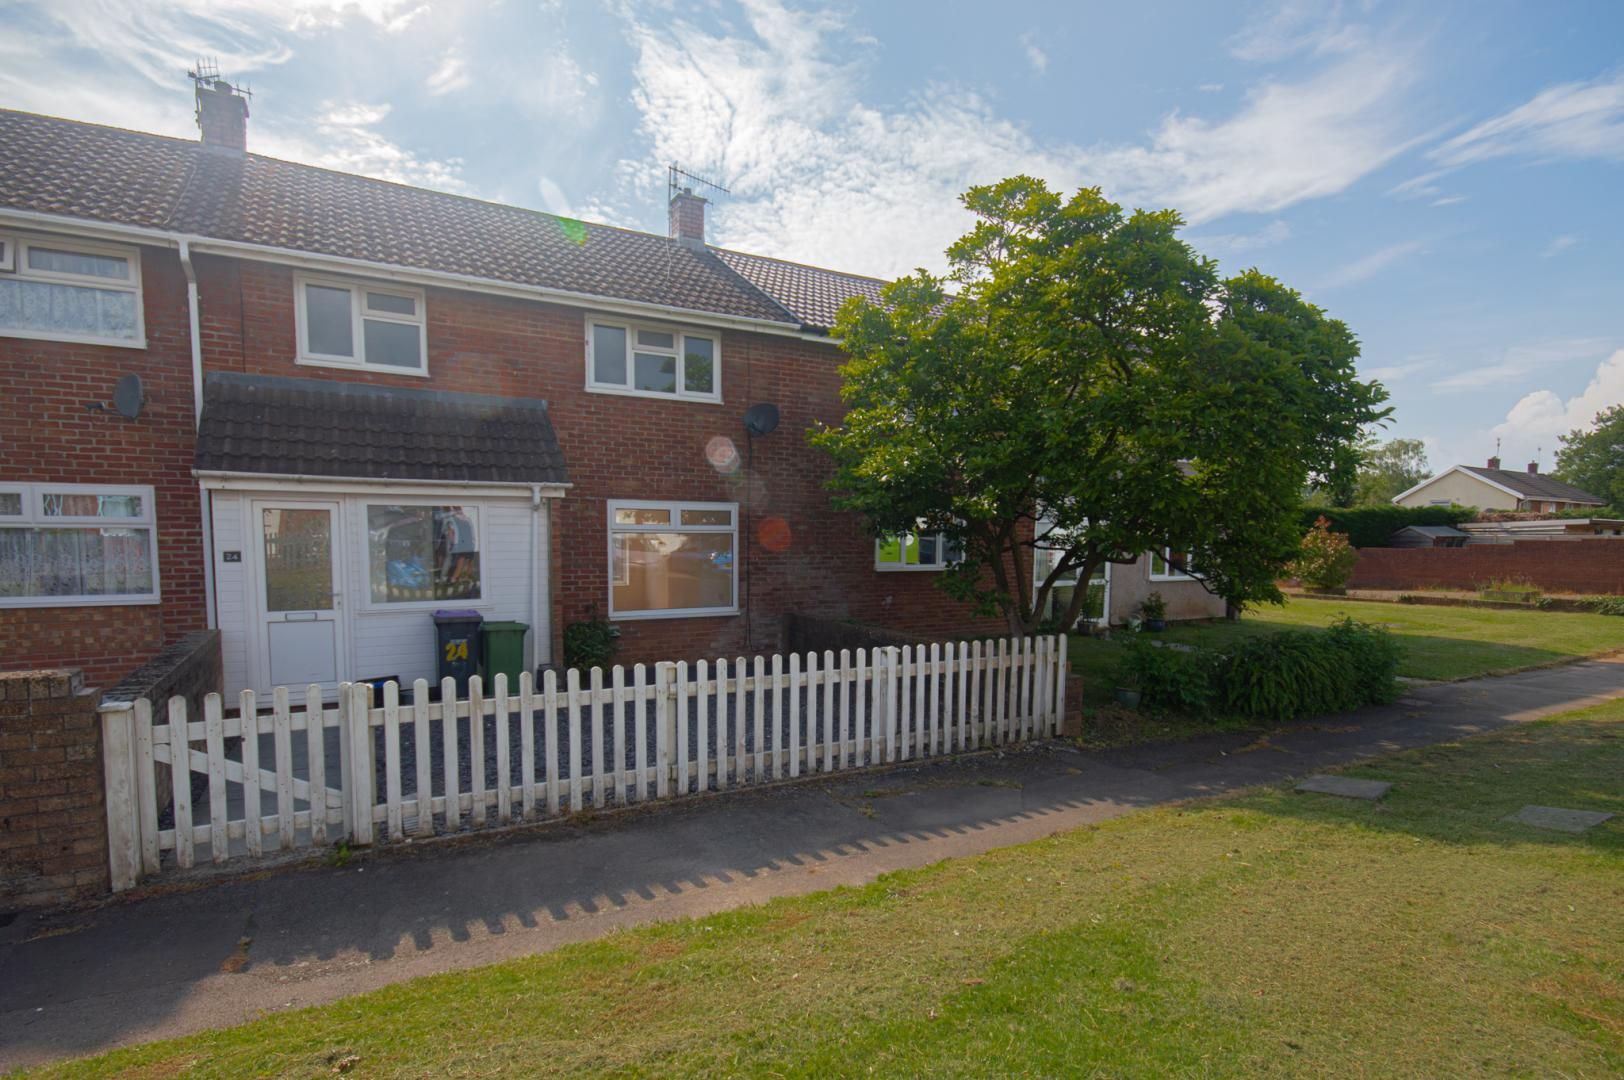 3 bed house to rent in Rumney Walk - Property Image 1